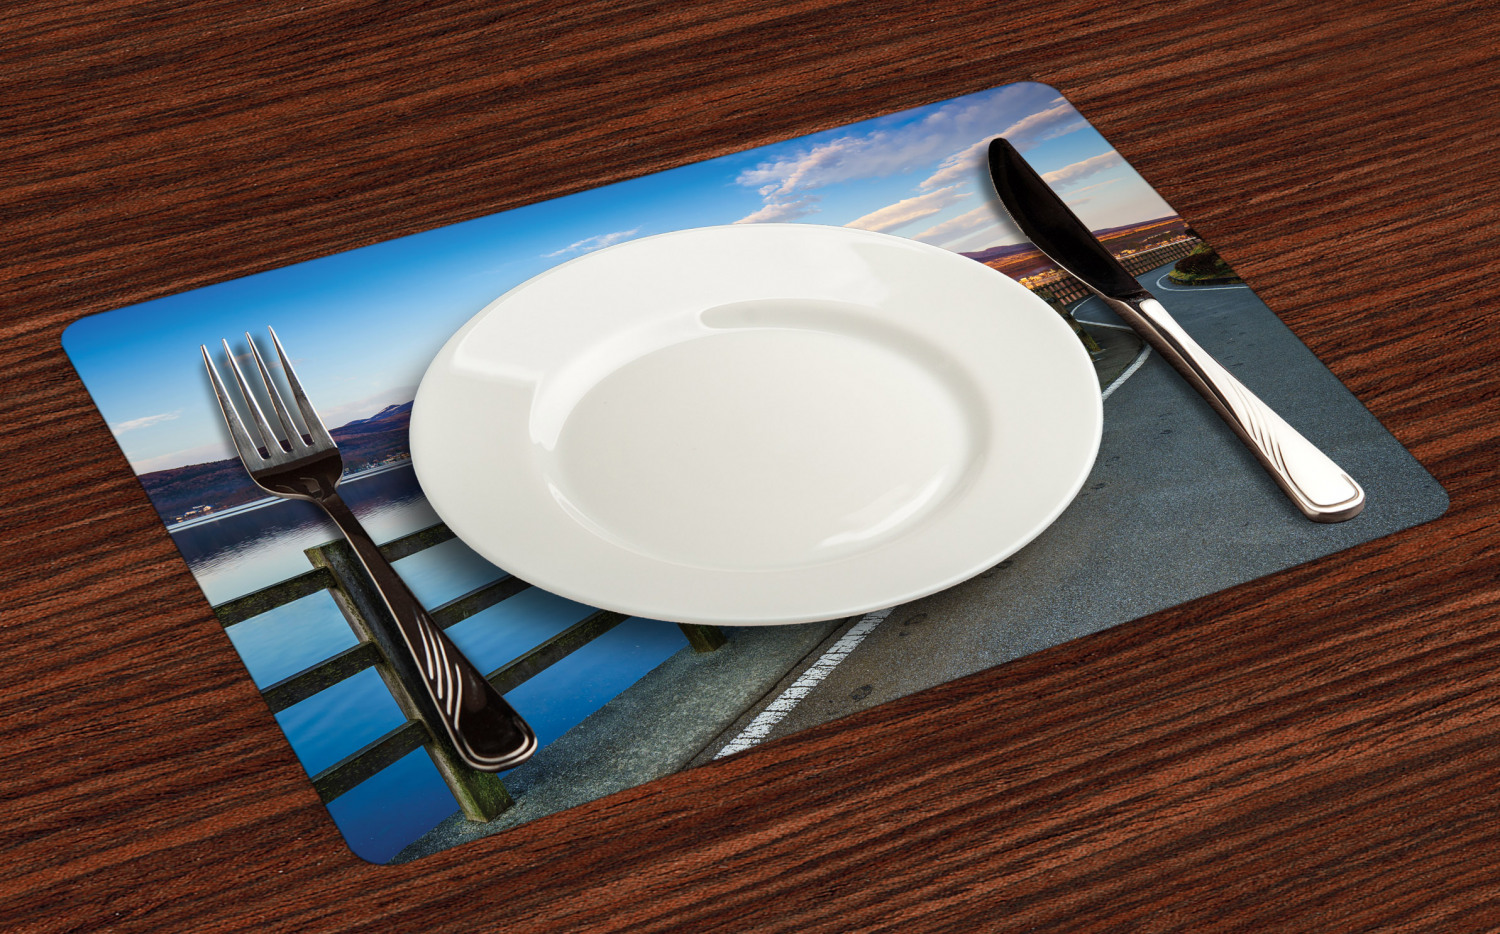 Ambesonne-Fabric-Place-Mats-Set-of-4-Placemats-for-Dining-Room-and-Kitchen-Table thumbnail 181